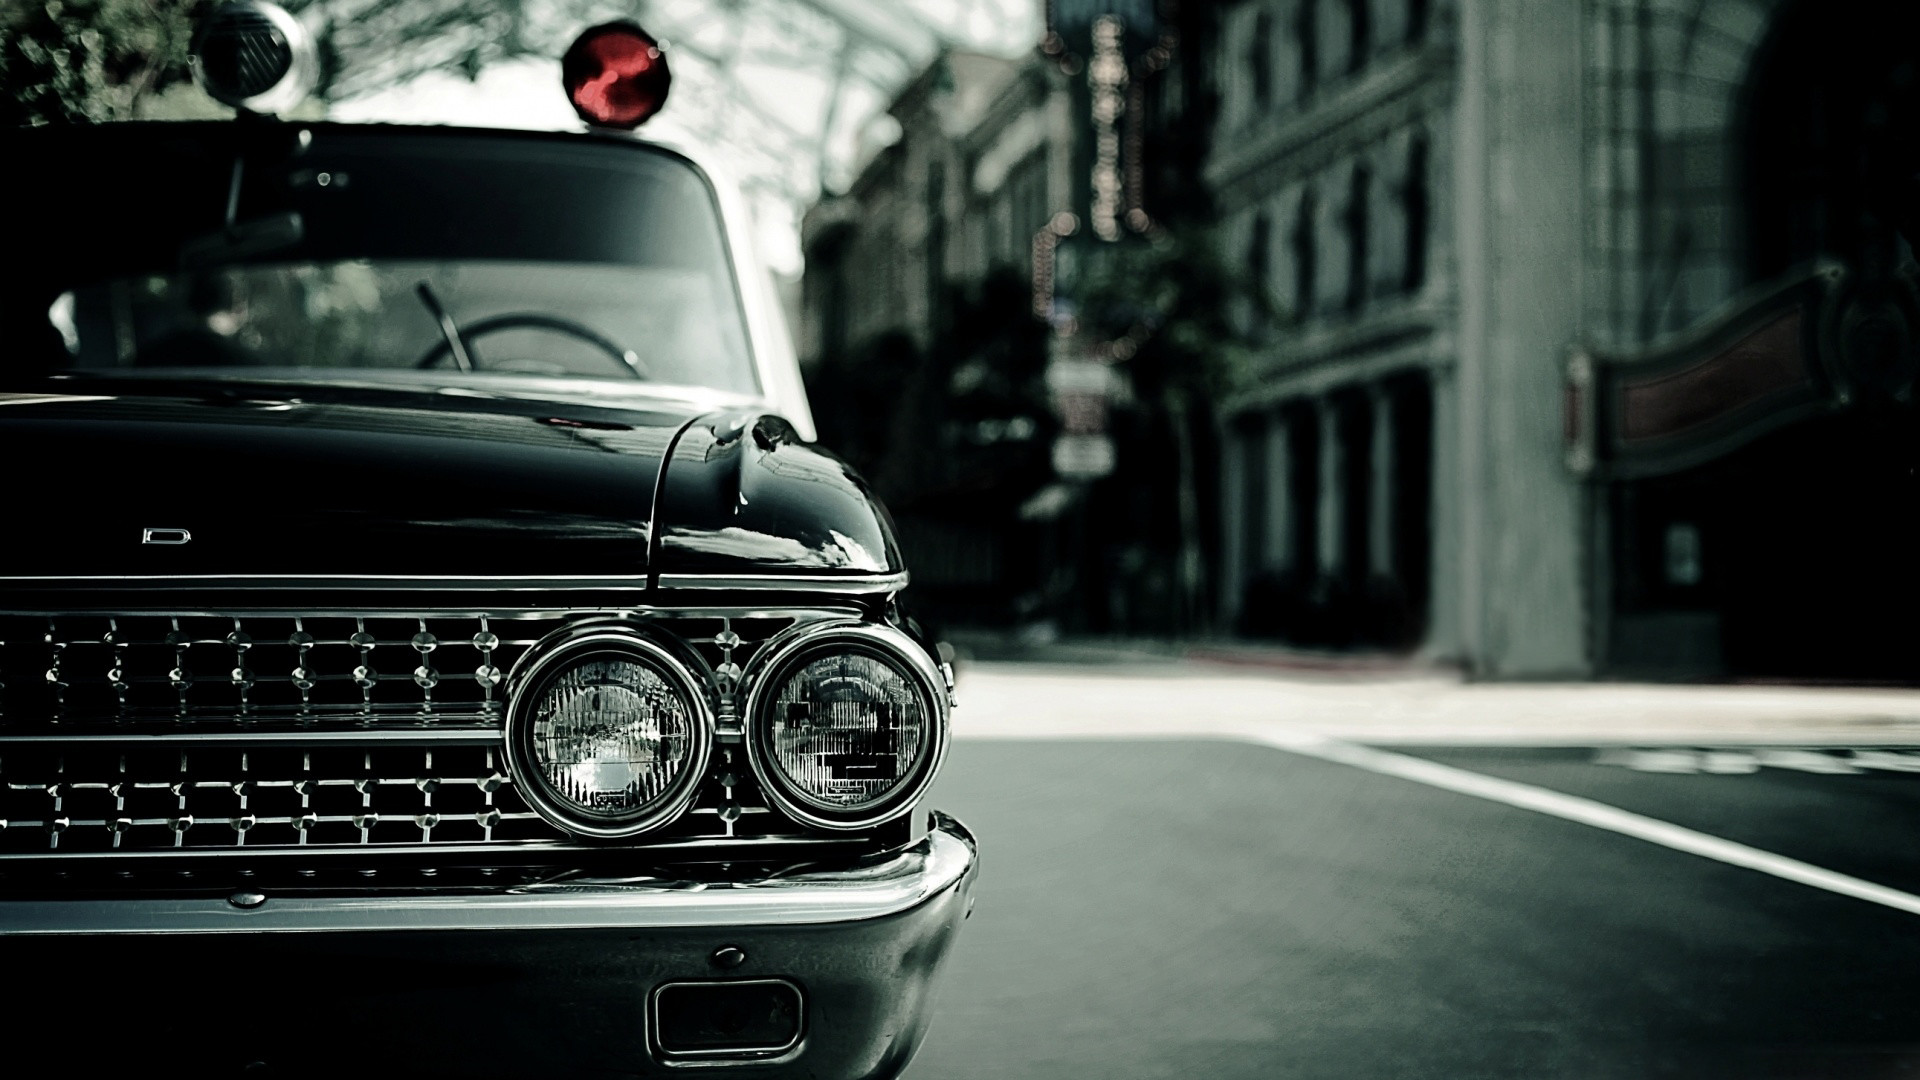 Res: 1920x1080, The-Best-Vintage-Car-Wallpapers-13 (Roundup: The Best